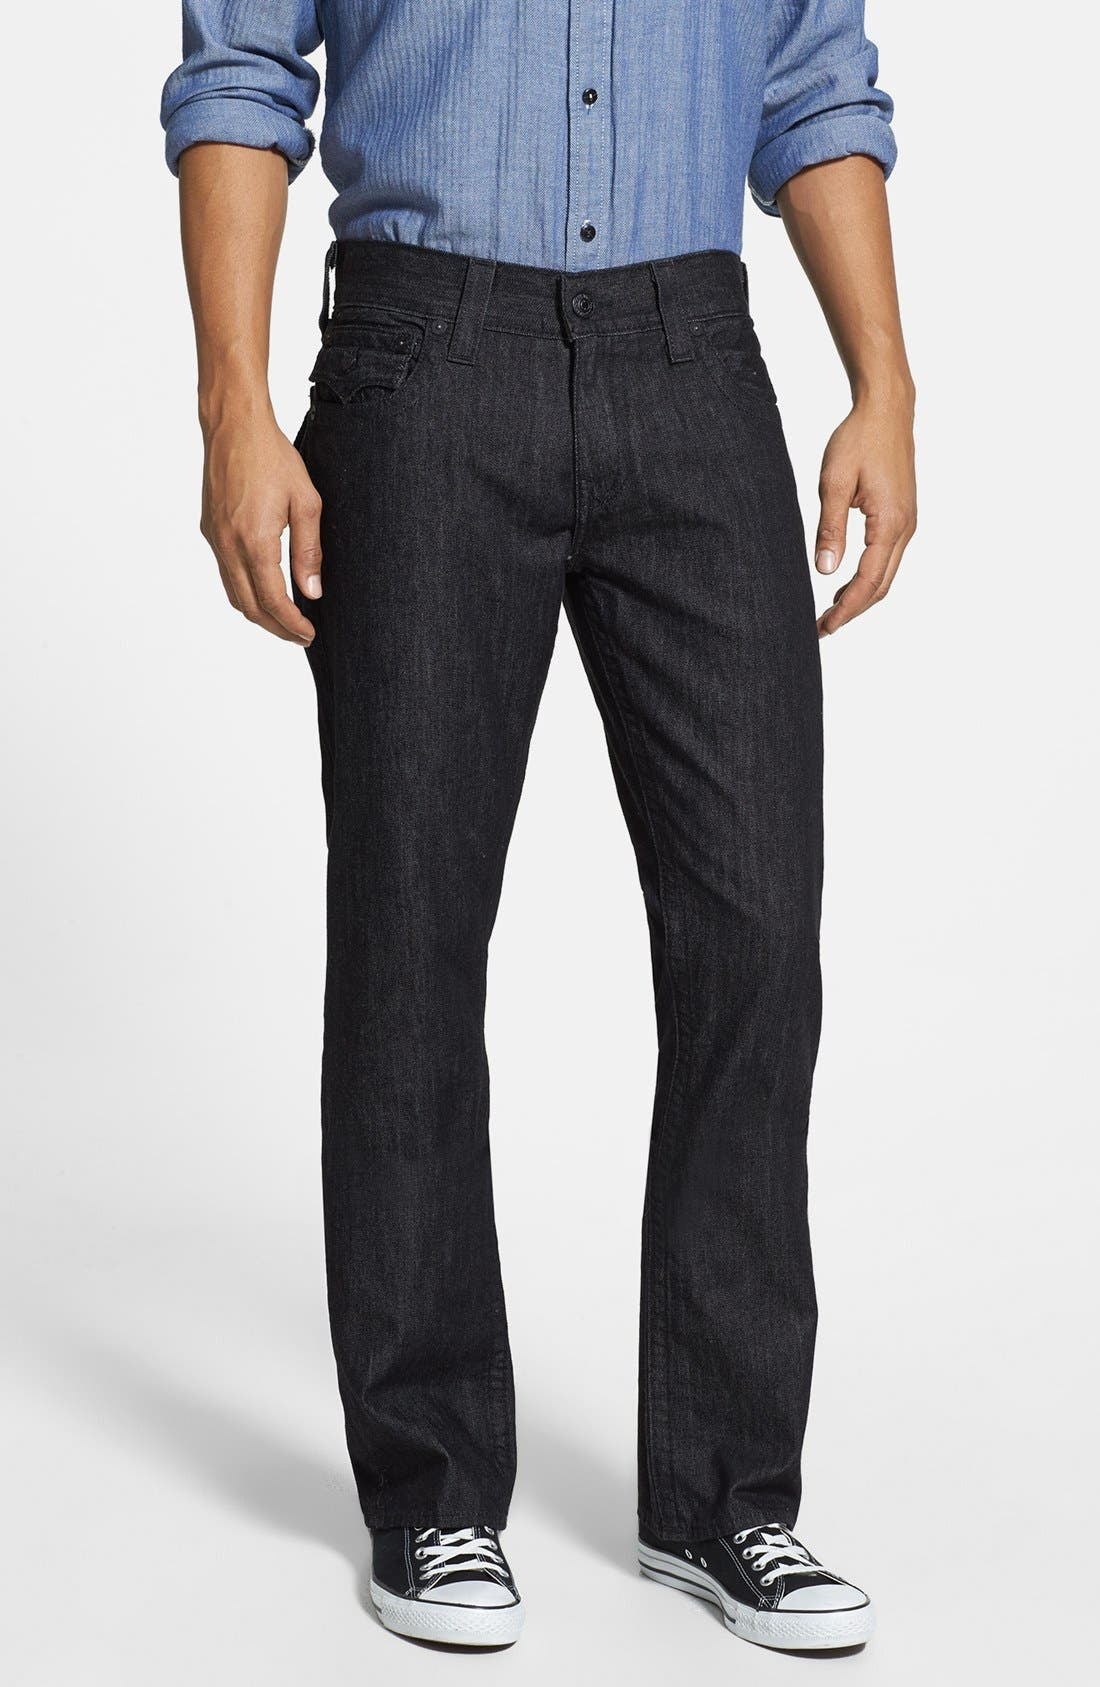 'Ricky' Relaxed Fit Jeans,                             Alternate thumbnail 4, color,                             001